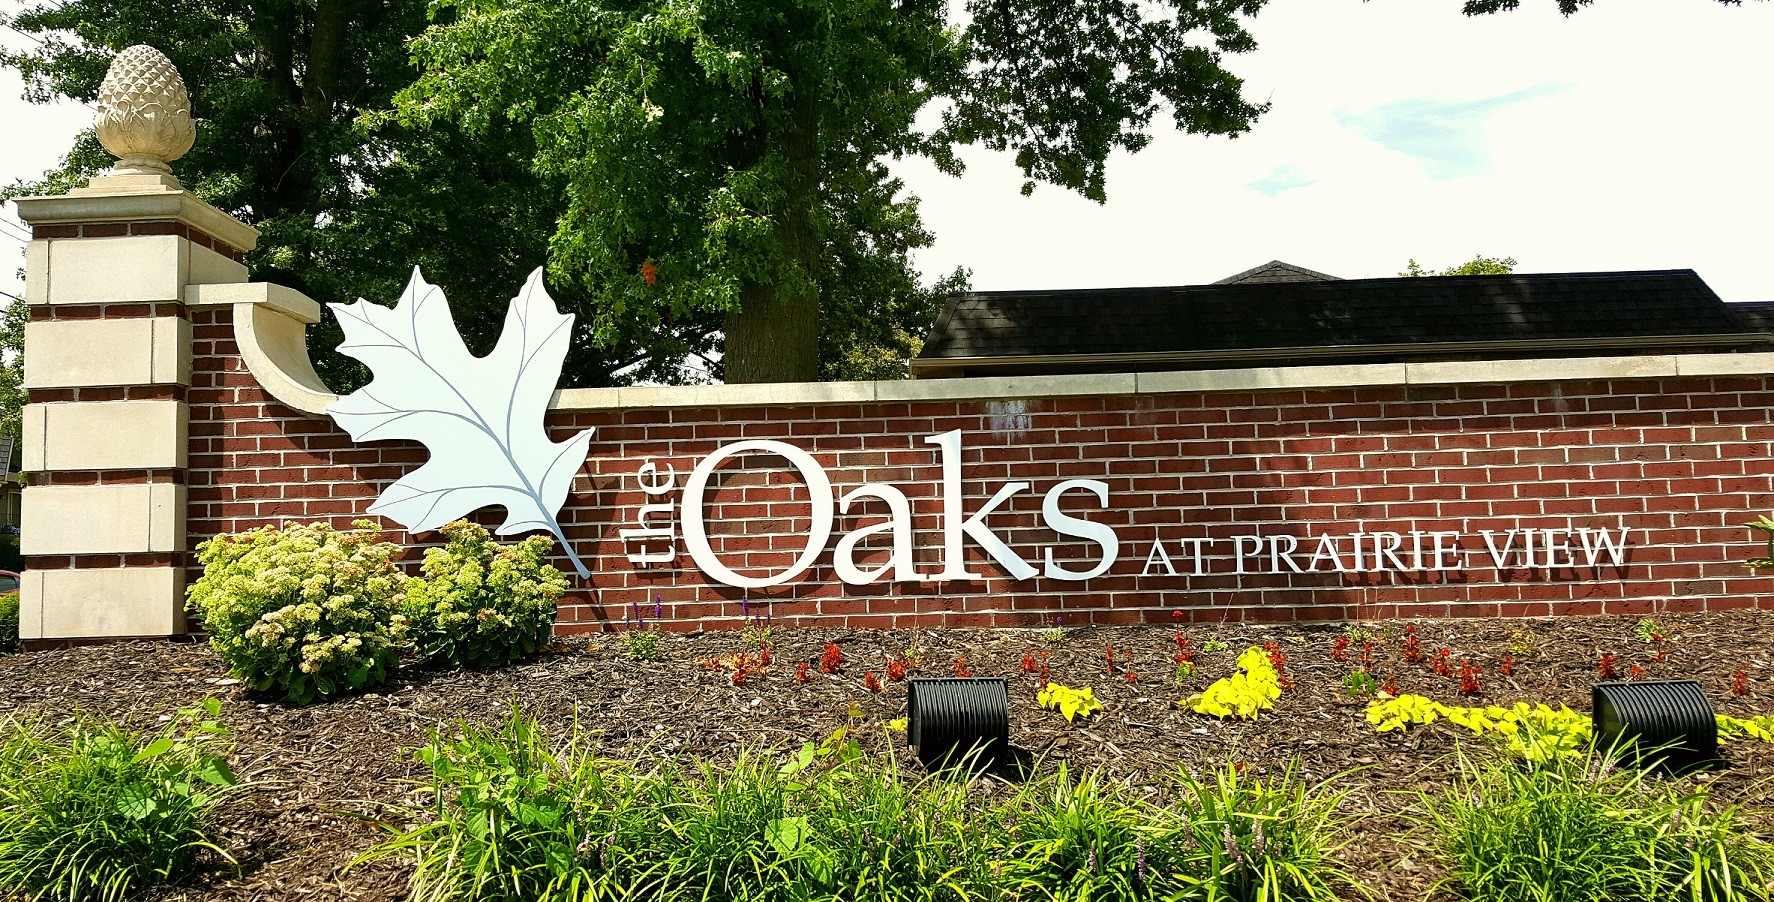 The Oaks at Prairie View